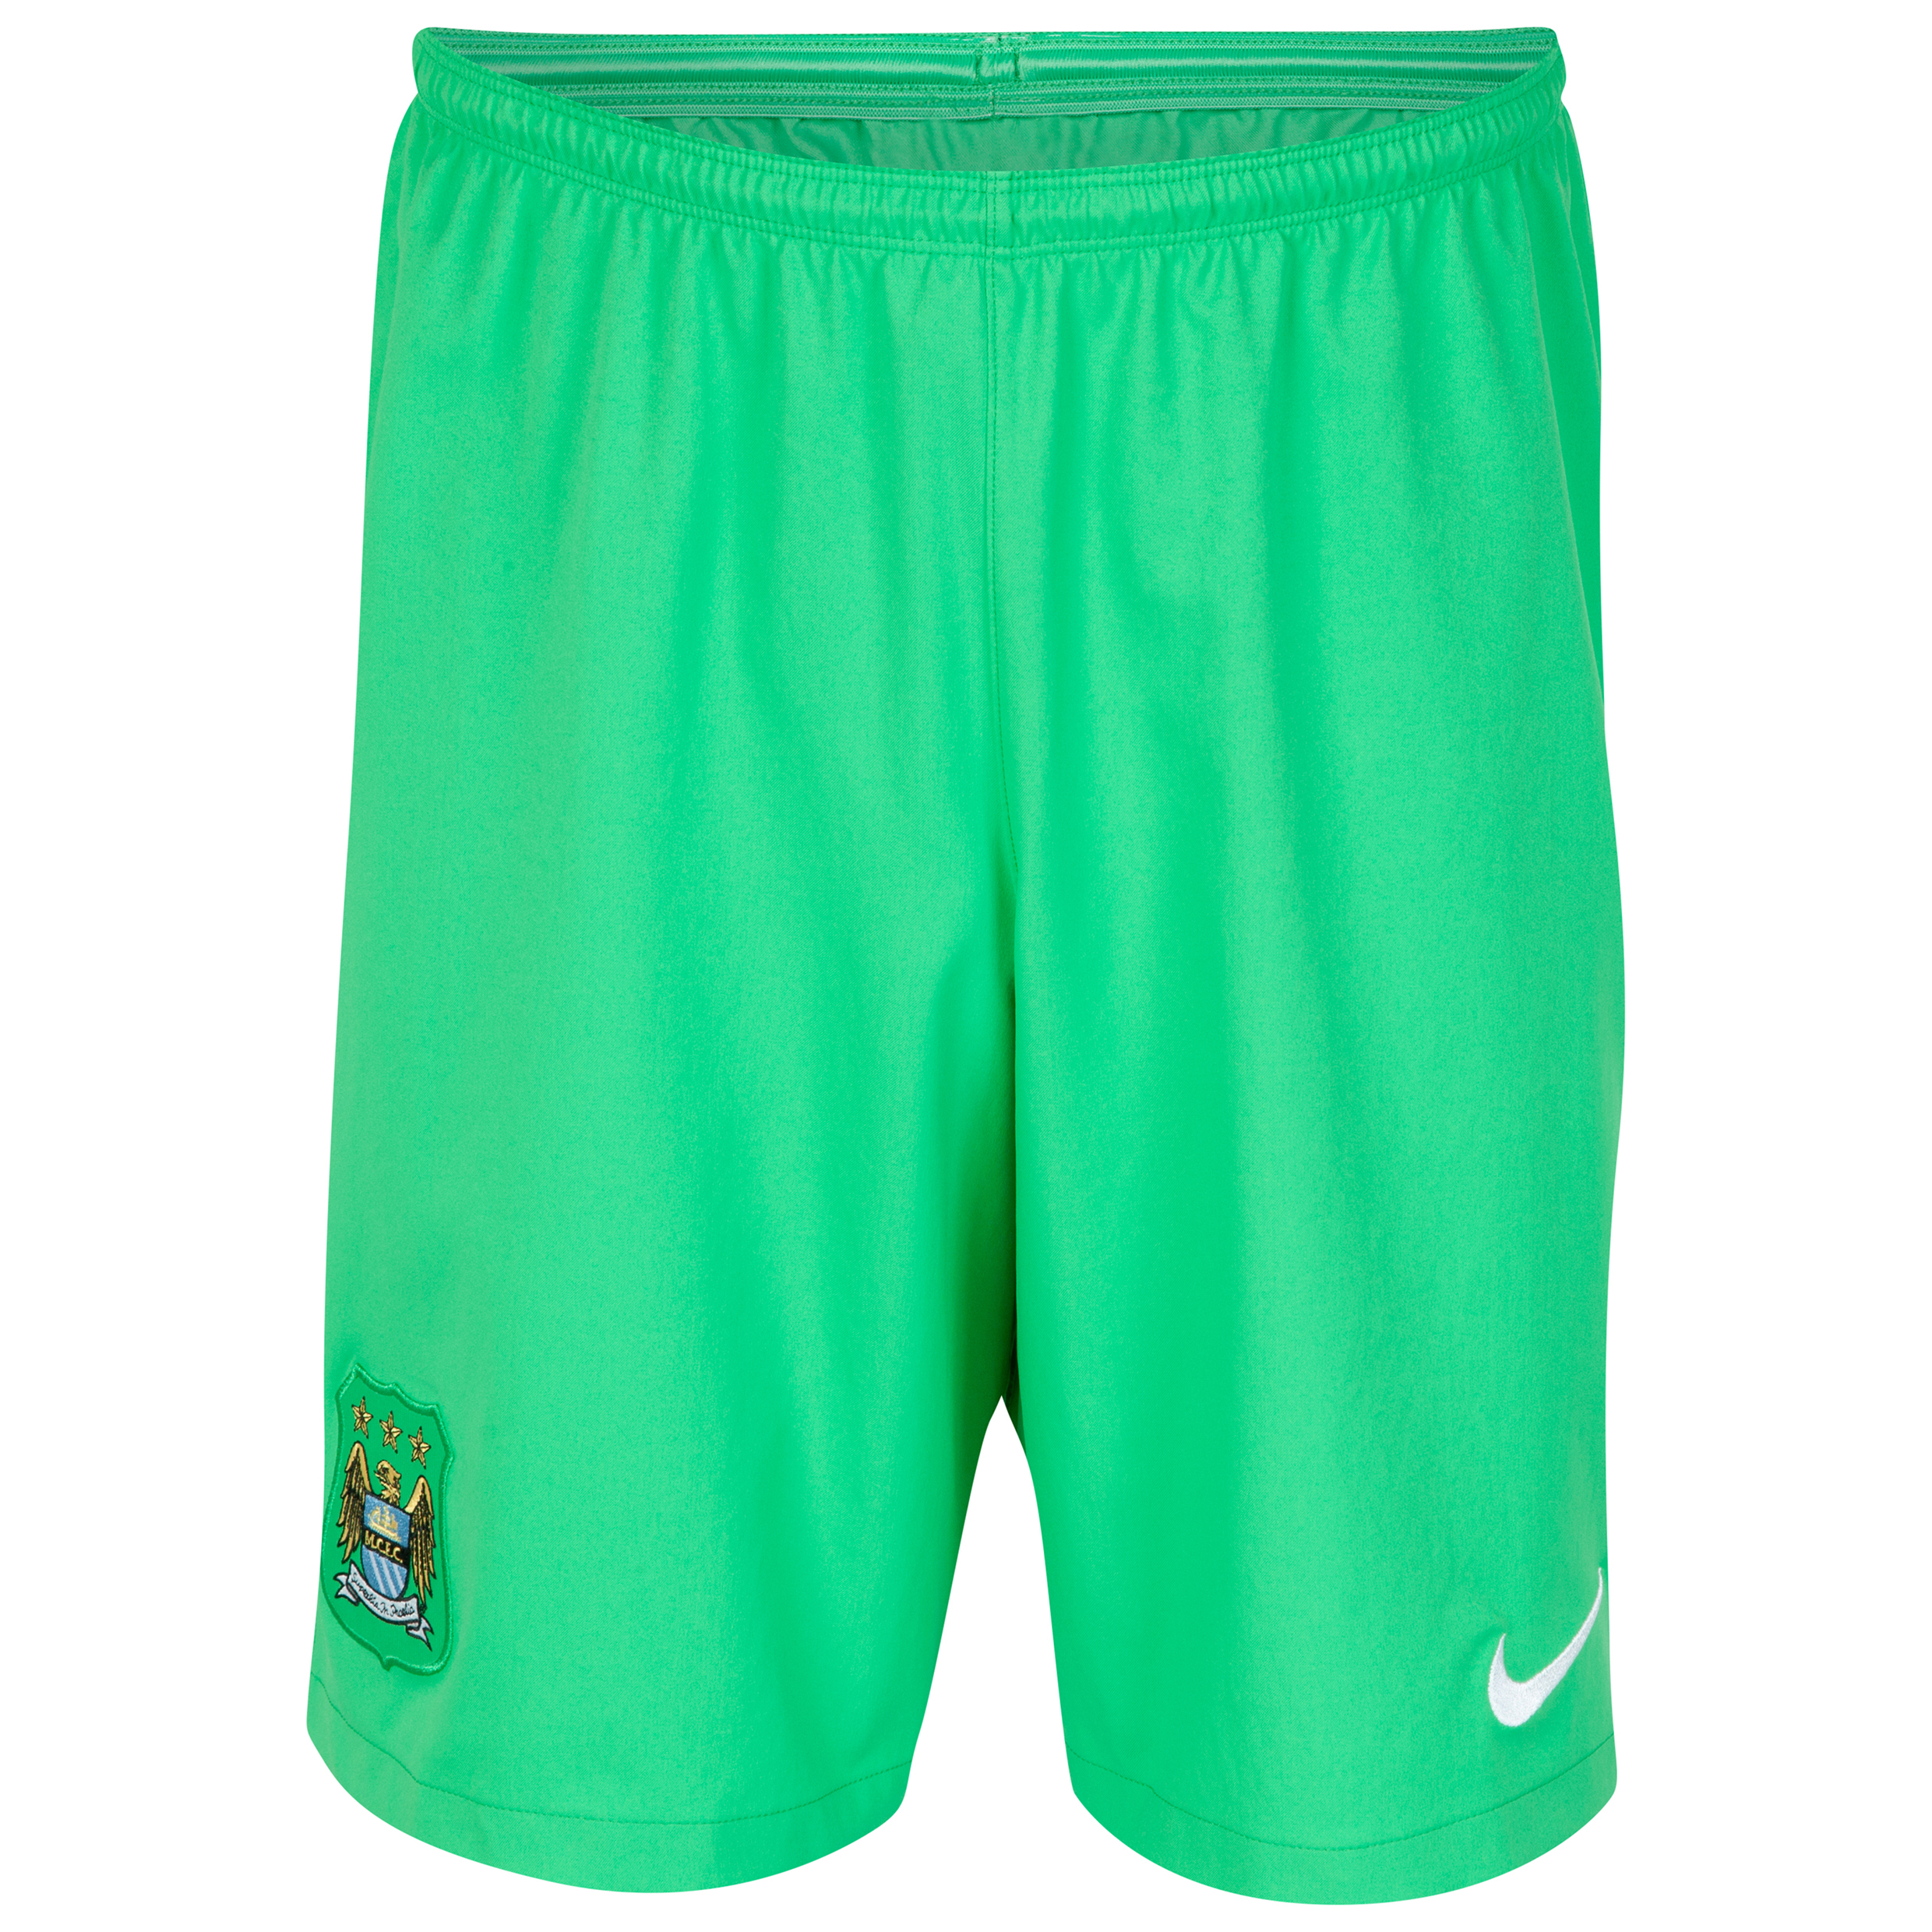 Manchester City Goalkeeper Shorts 2014/15 Lt Green